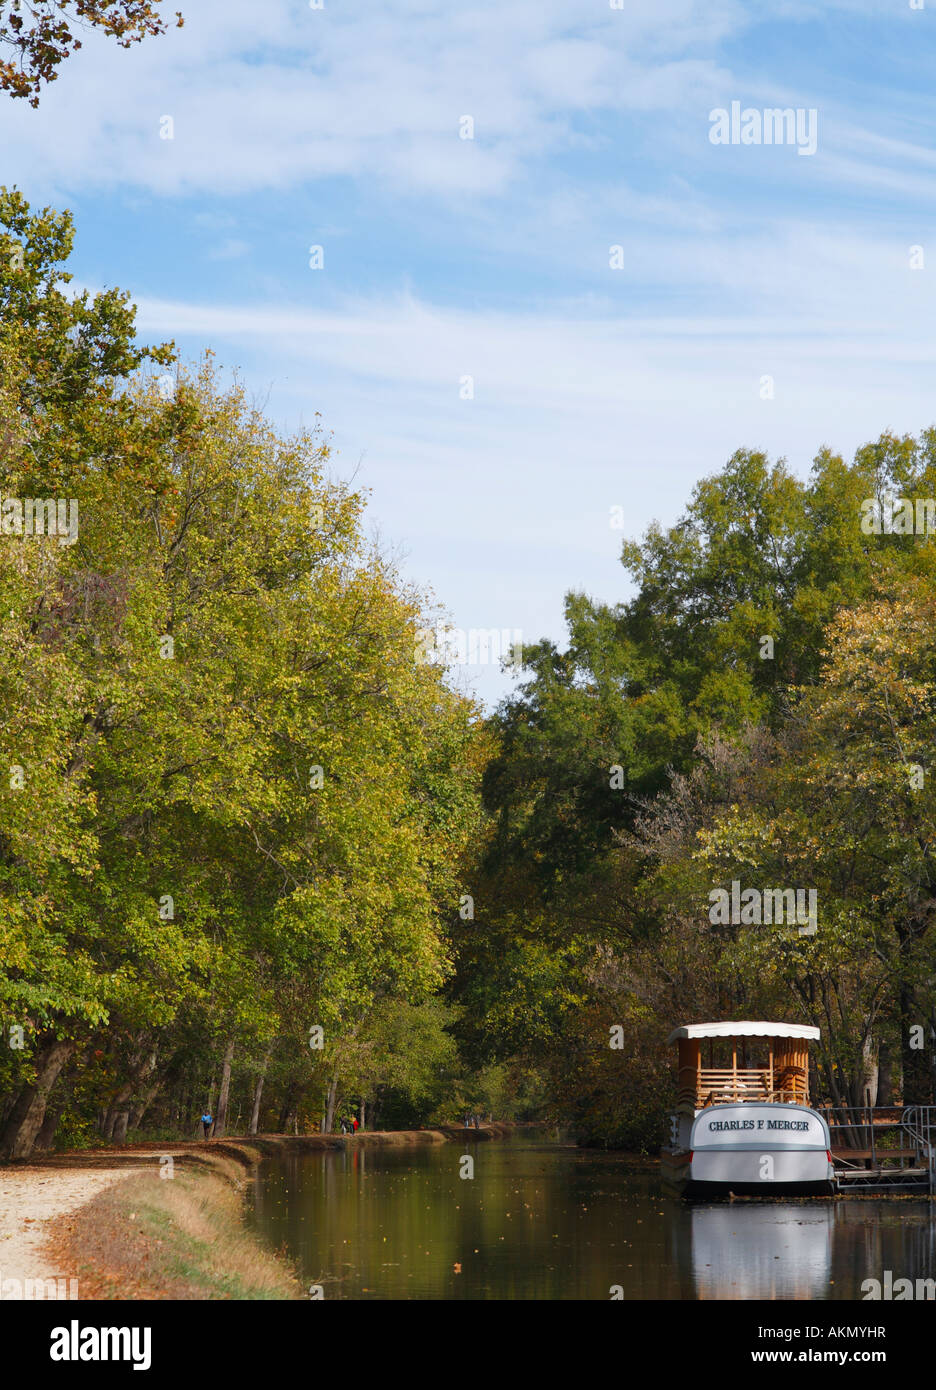 Volunteers dressed in period clothing operate the canal boat Charles F Mercer towed by two mules Great Falls National - Stock Image